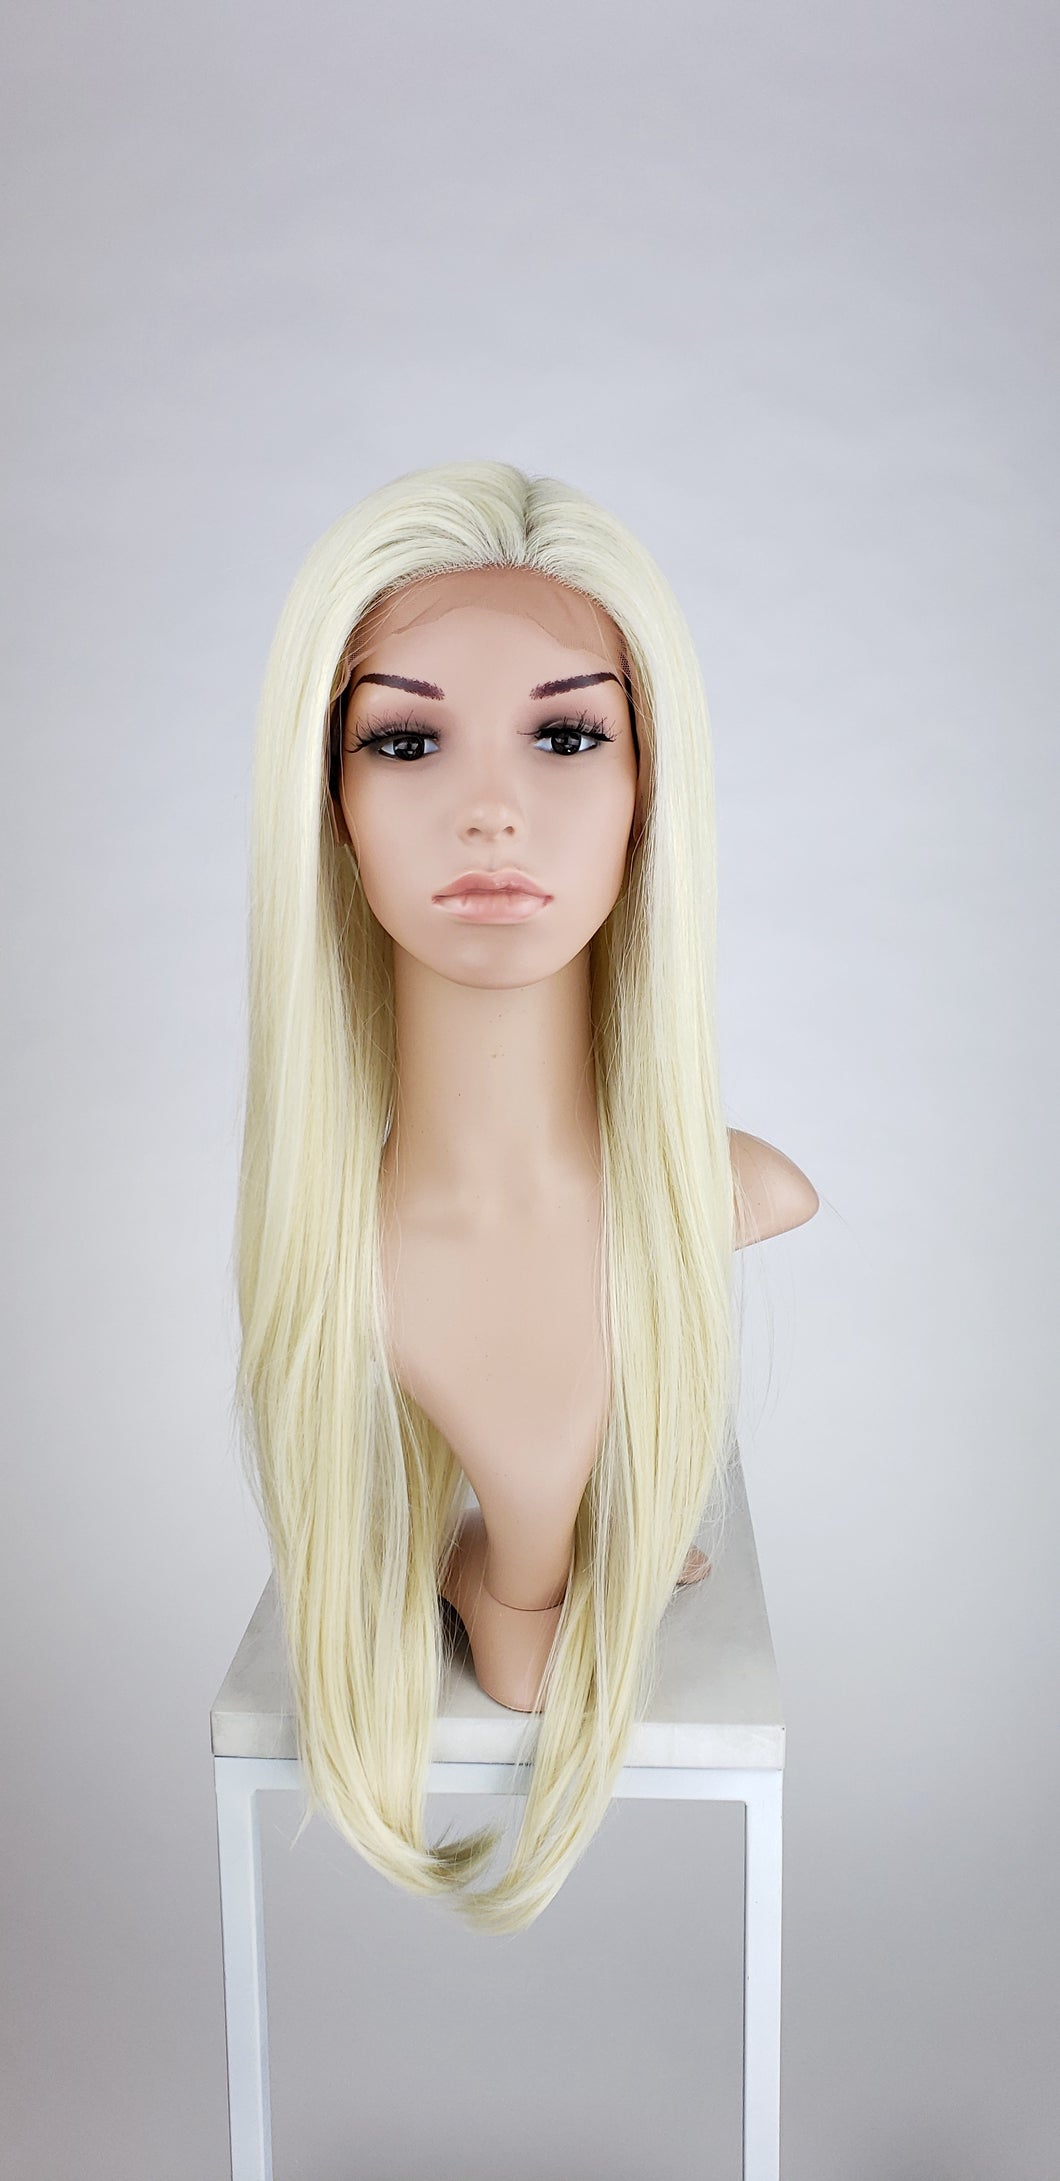 Pose Wigs Blonde Long Straight Lace Front Wig - Special Full Lace Top Princess Series LPMAL44